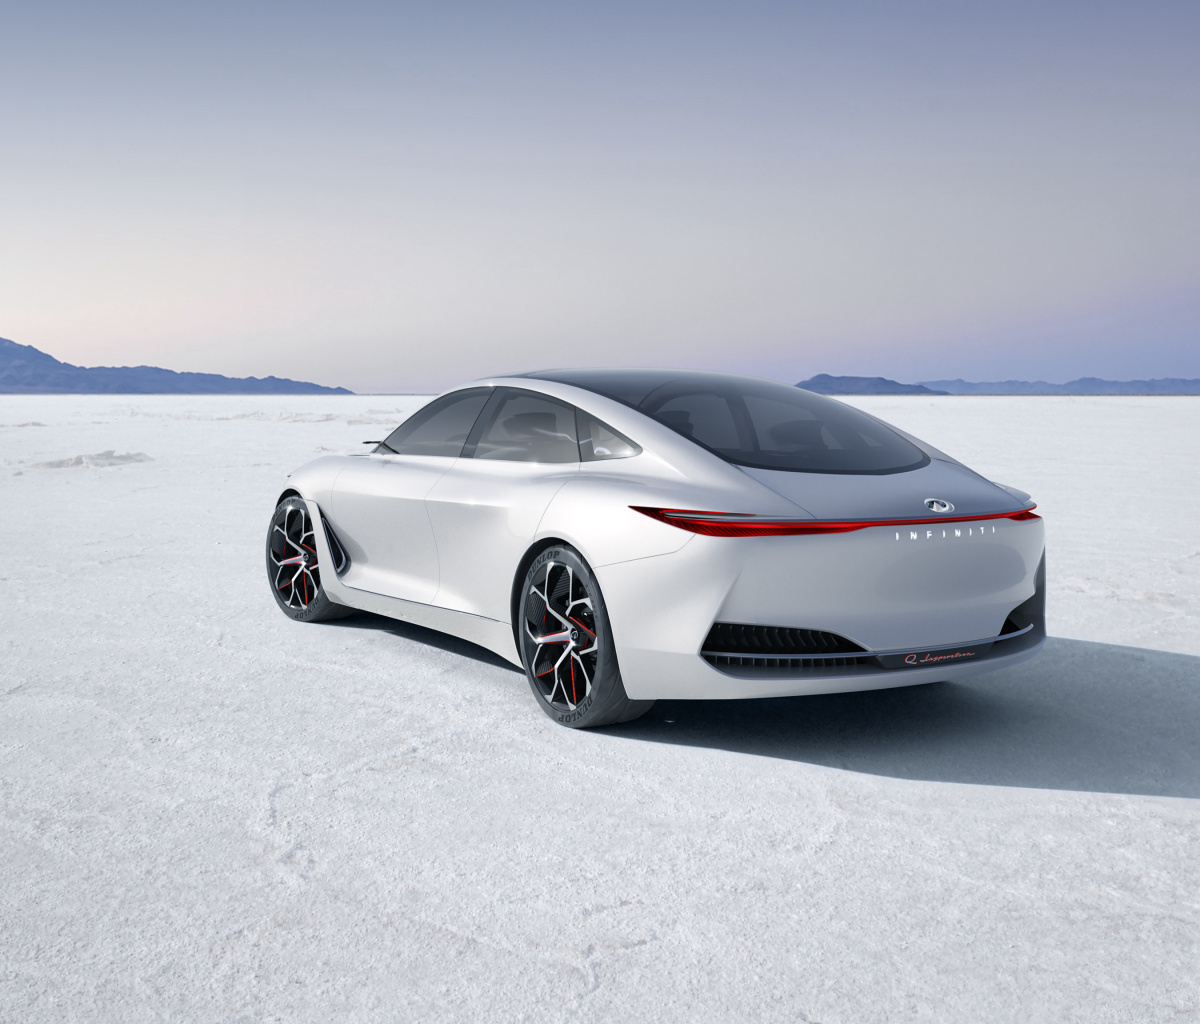 Infiniti Q Inspiration Futuristic Sedan wallpaper 1200x1024